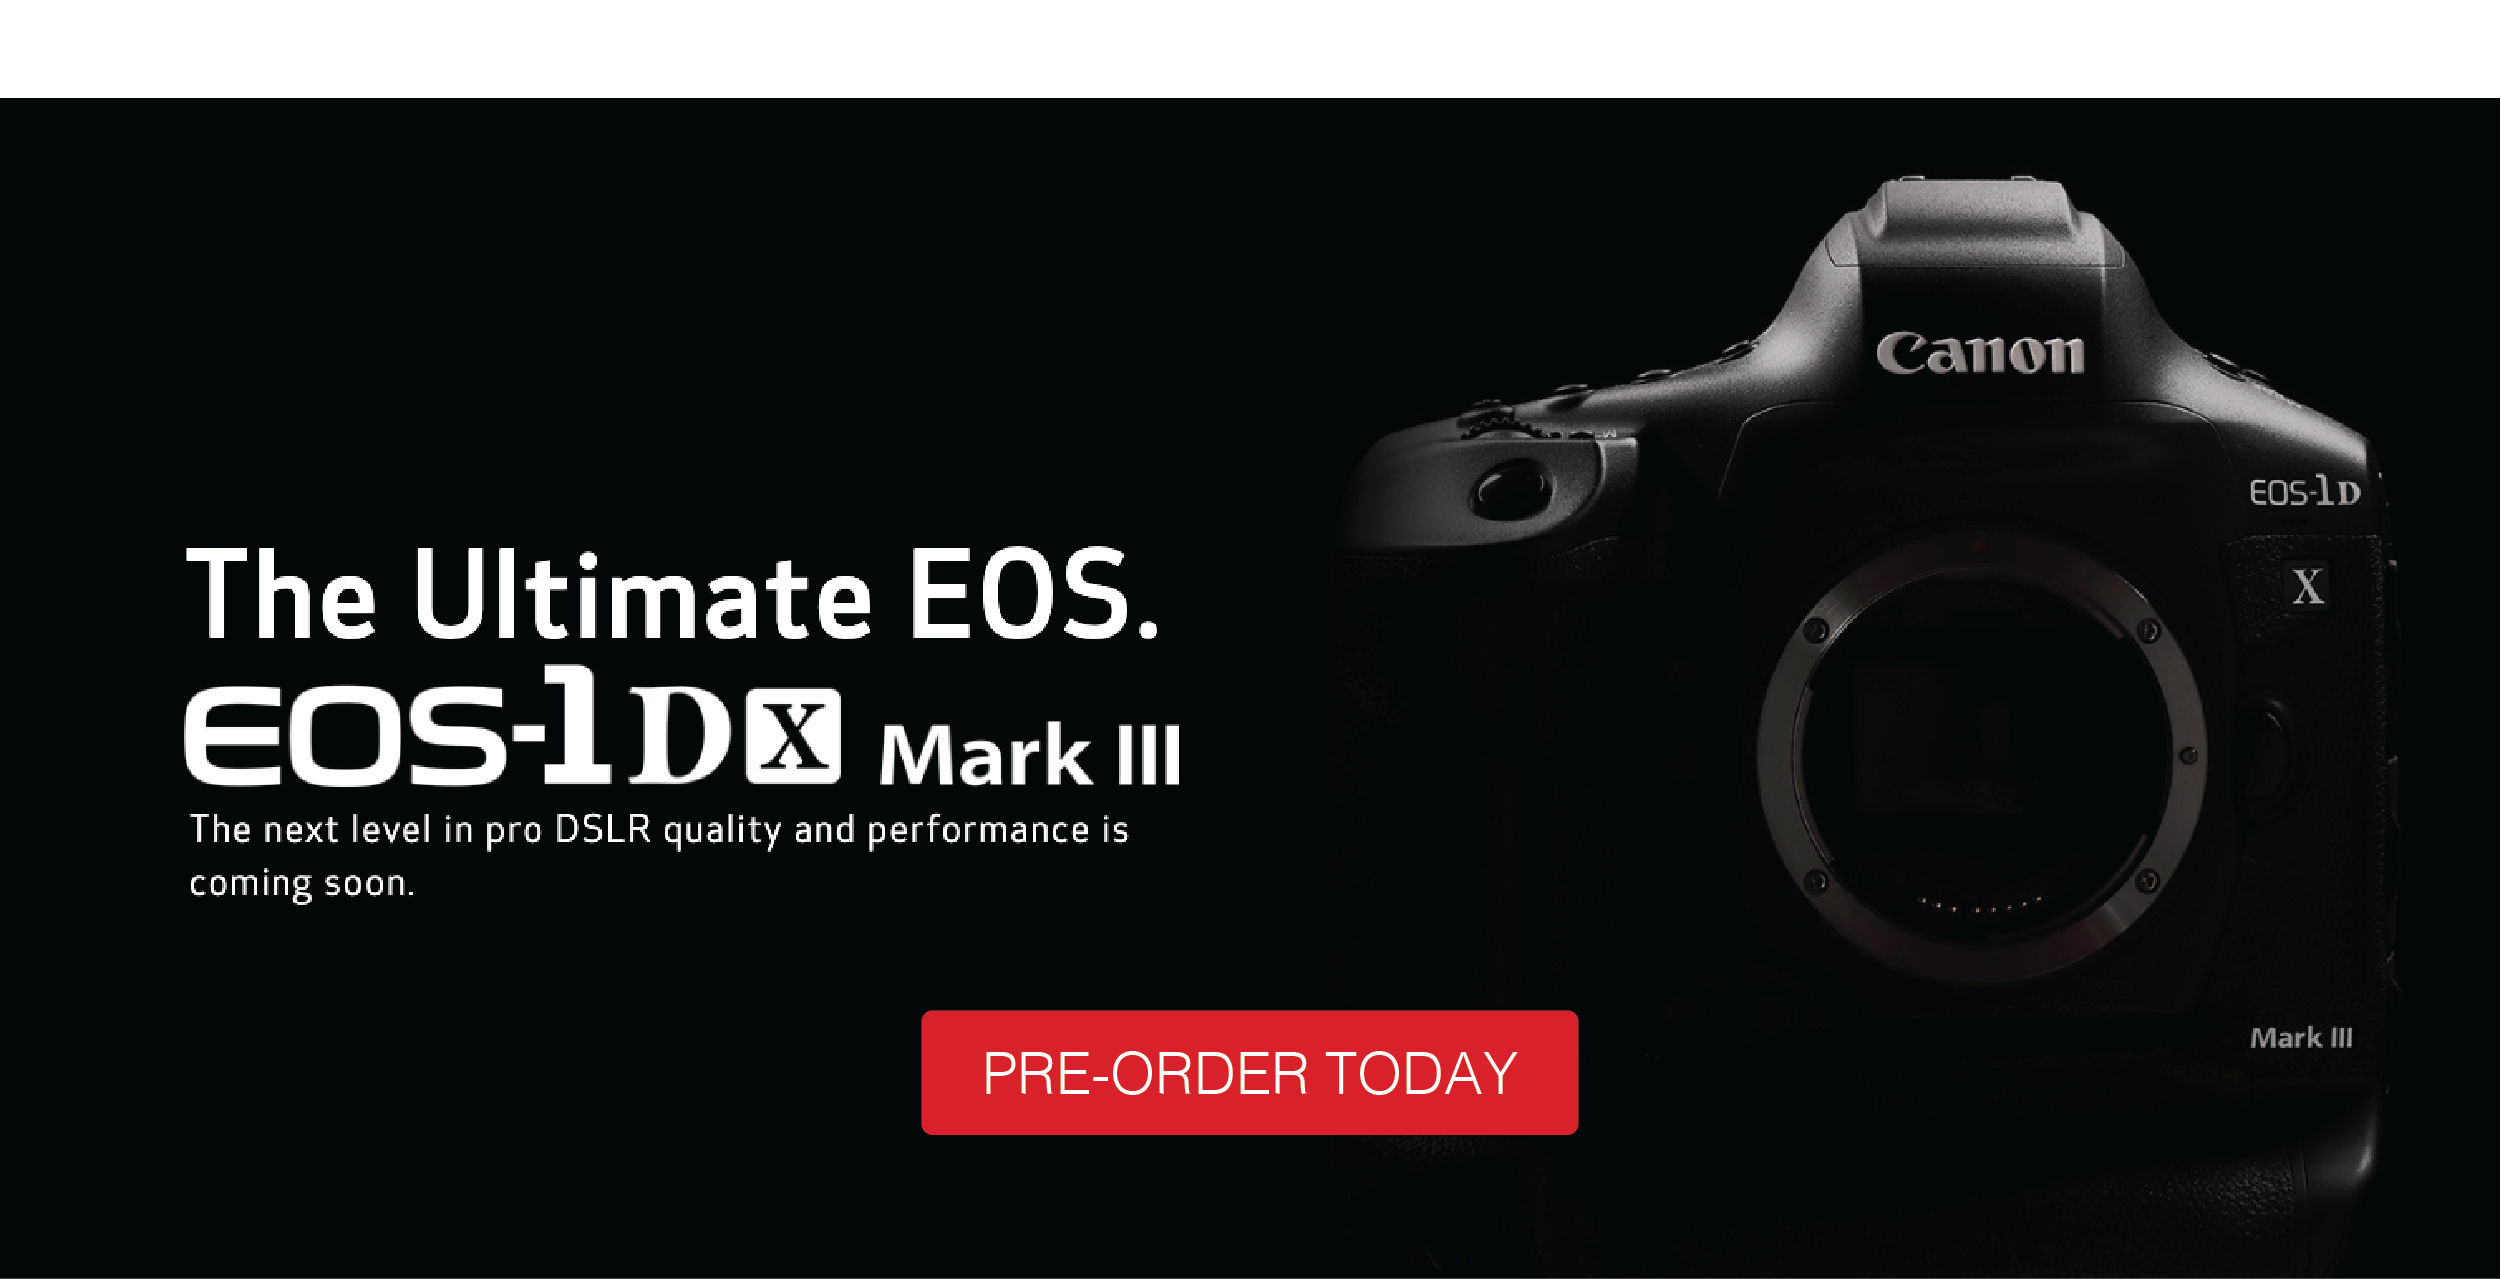 Pre-Order the New EOS-1Dx Mark III Today!